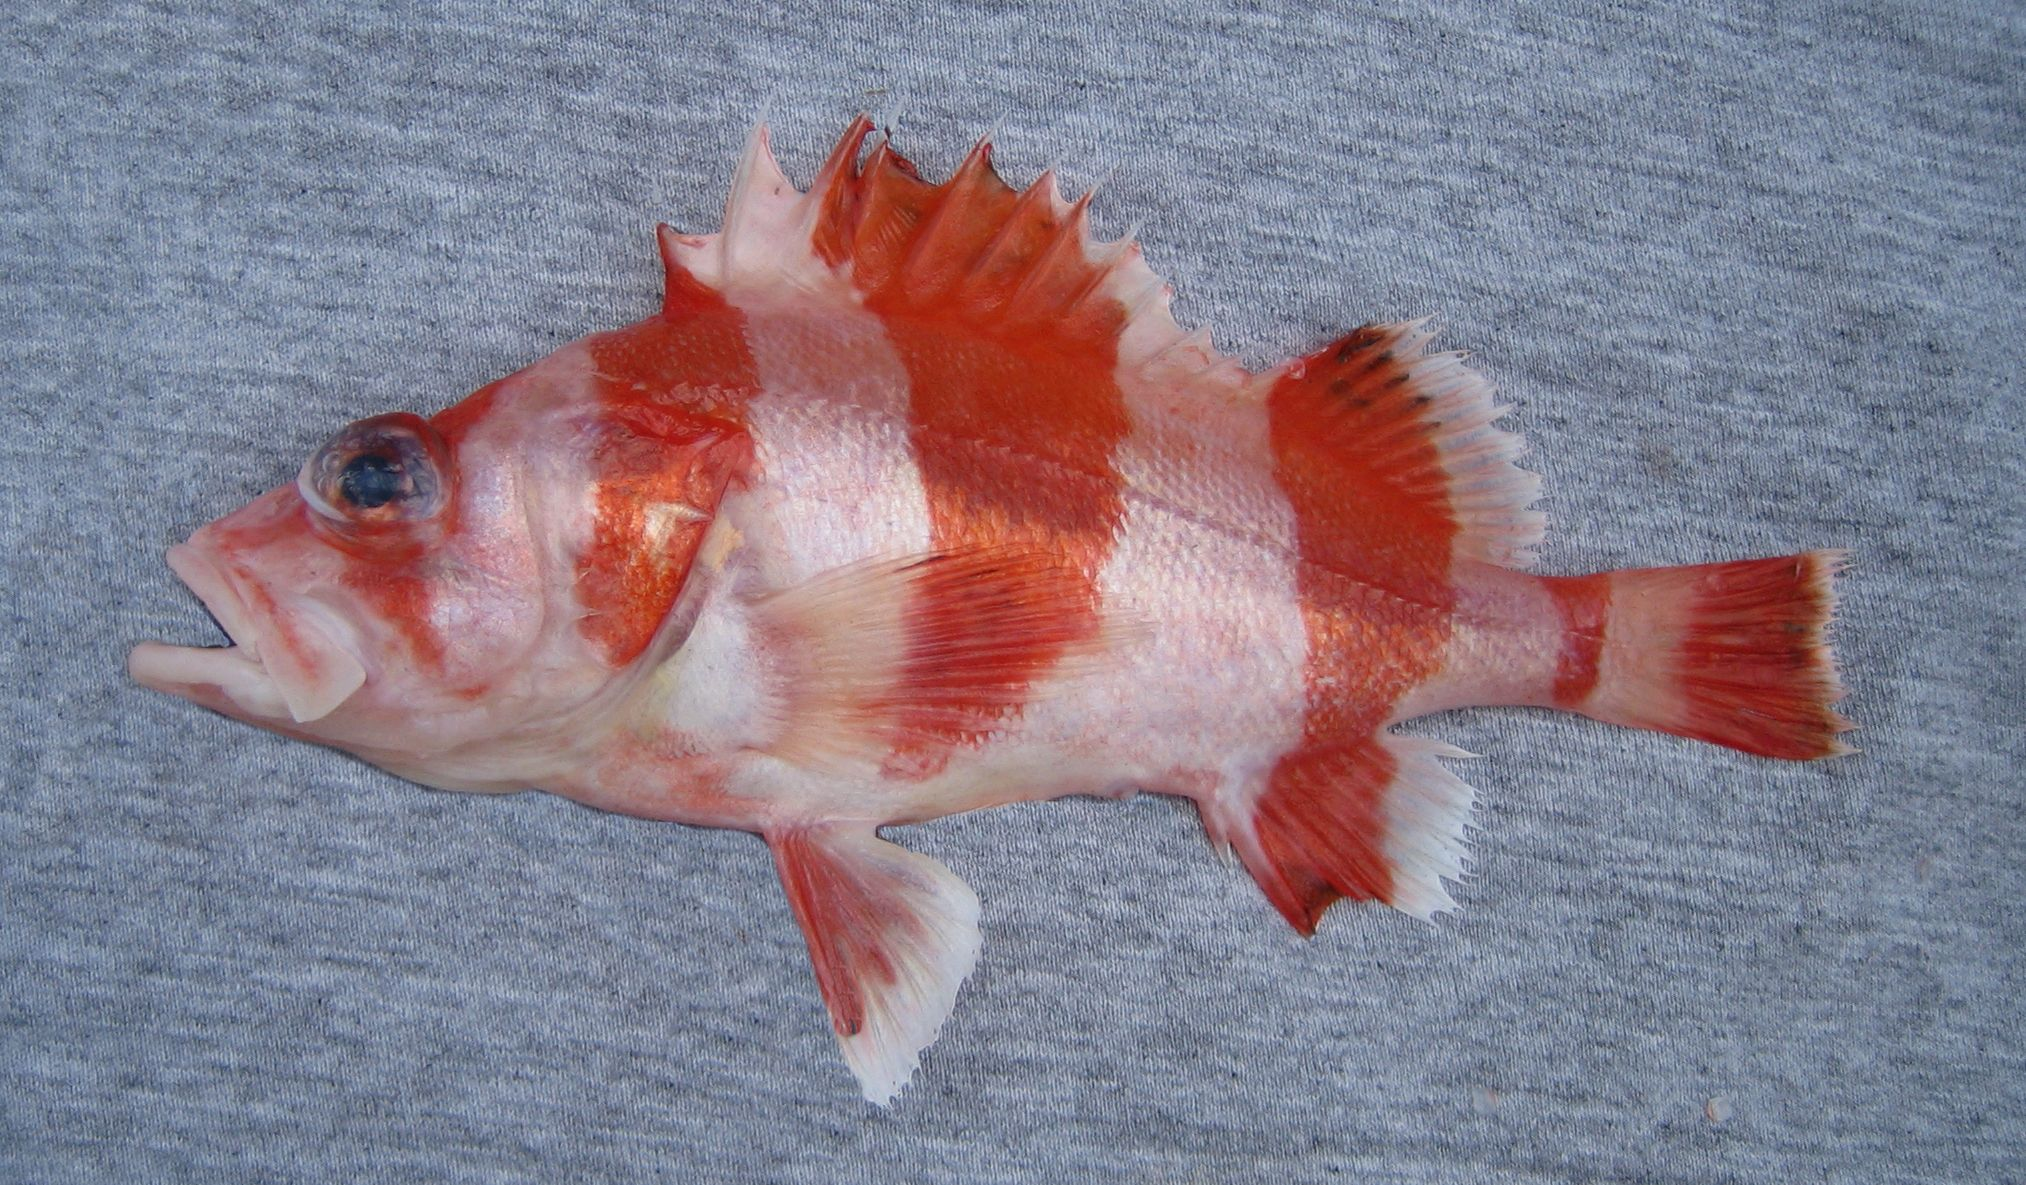 Flag Rockfish | Mexico – Fish, Marine Life, Birds and Terrestrial Life